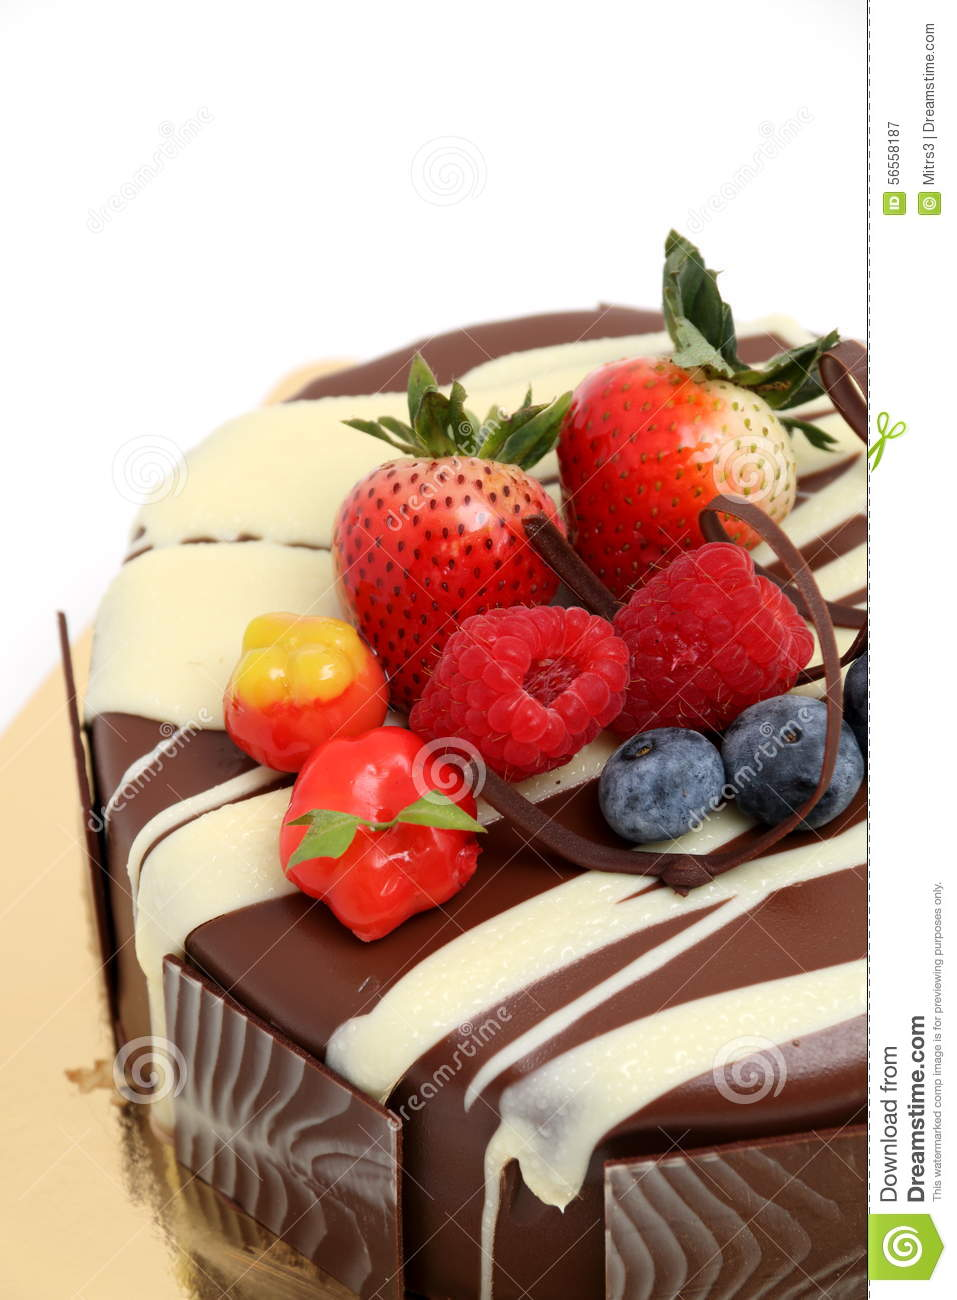 Chocolate Cake With Strawberry Topping Stock Image Image Of